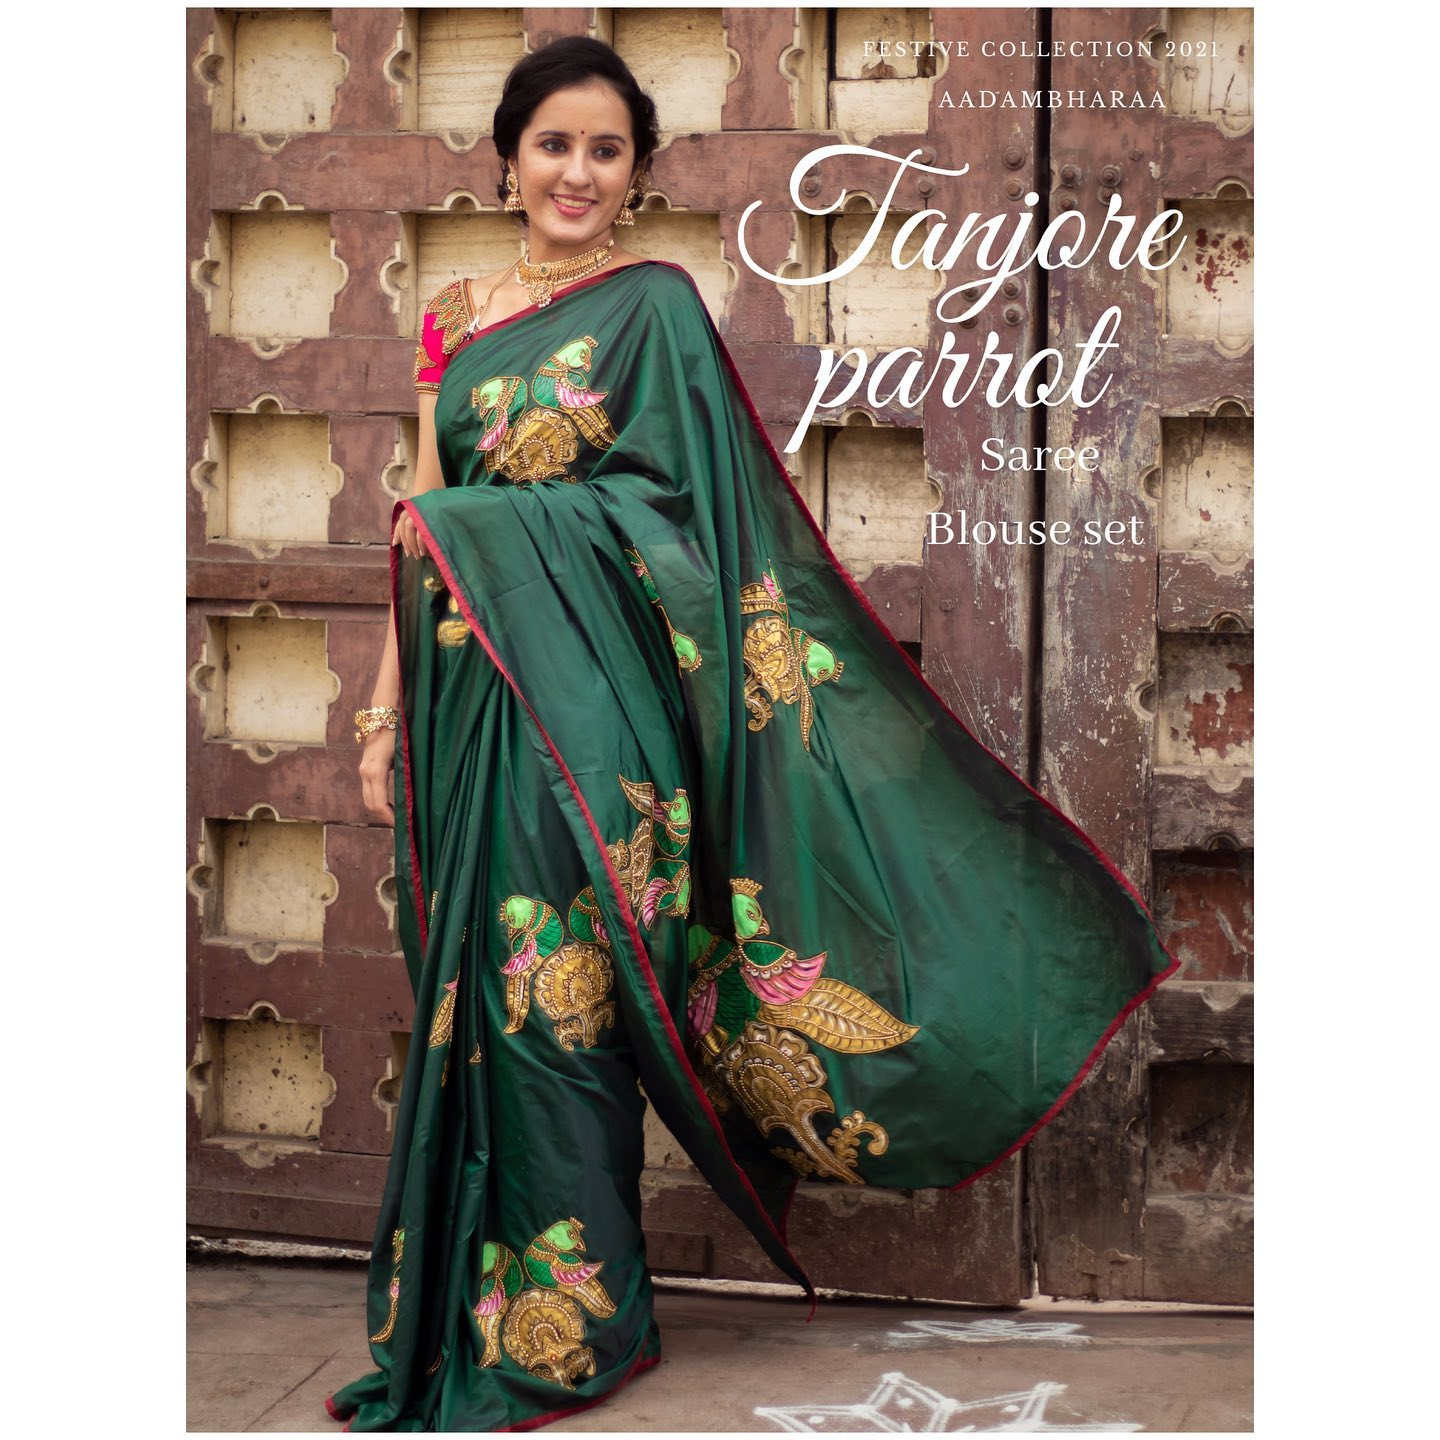 The festive collection of Aadambharaa inspired from vintage art of Tanjore paintings.   Introducing sarees and outfits that are embellished with the old word charm using colours techniques and art of Tanjore paintings on them. Grab your outfit today and flaunt your flair with Aadambharaa's Tanjore painting collection. Contact to purchase place an order +91 9840656145 . 2021-10-22